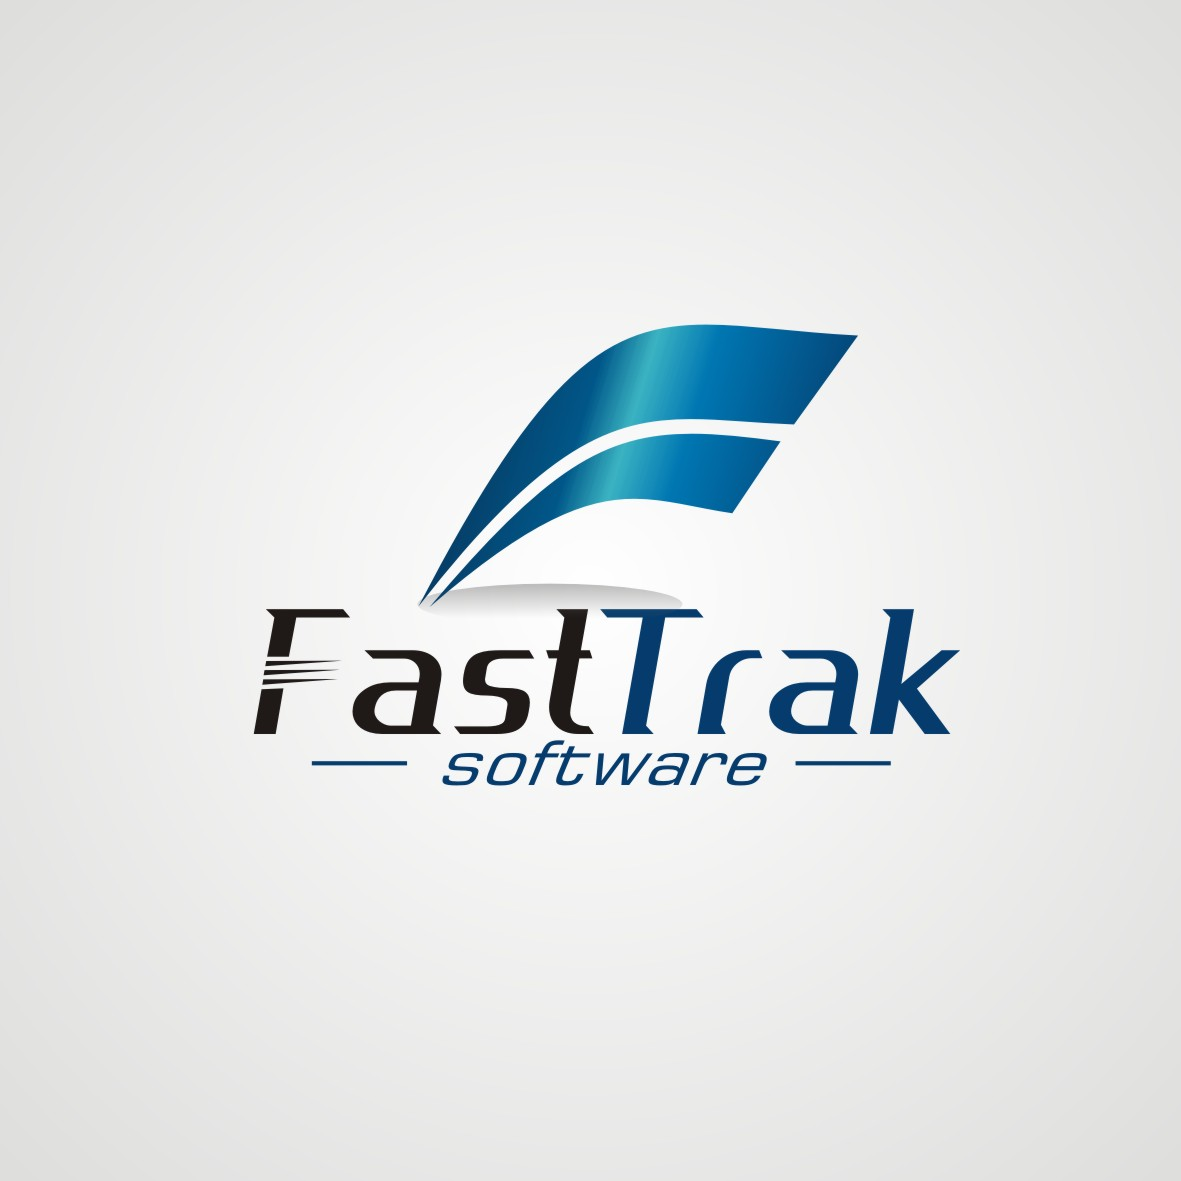 Logo Design by arteo_design - Entry No. 52 in the Logo Design Contest Fast Trak Software Logo Design.